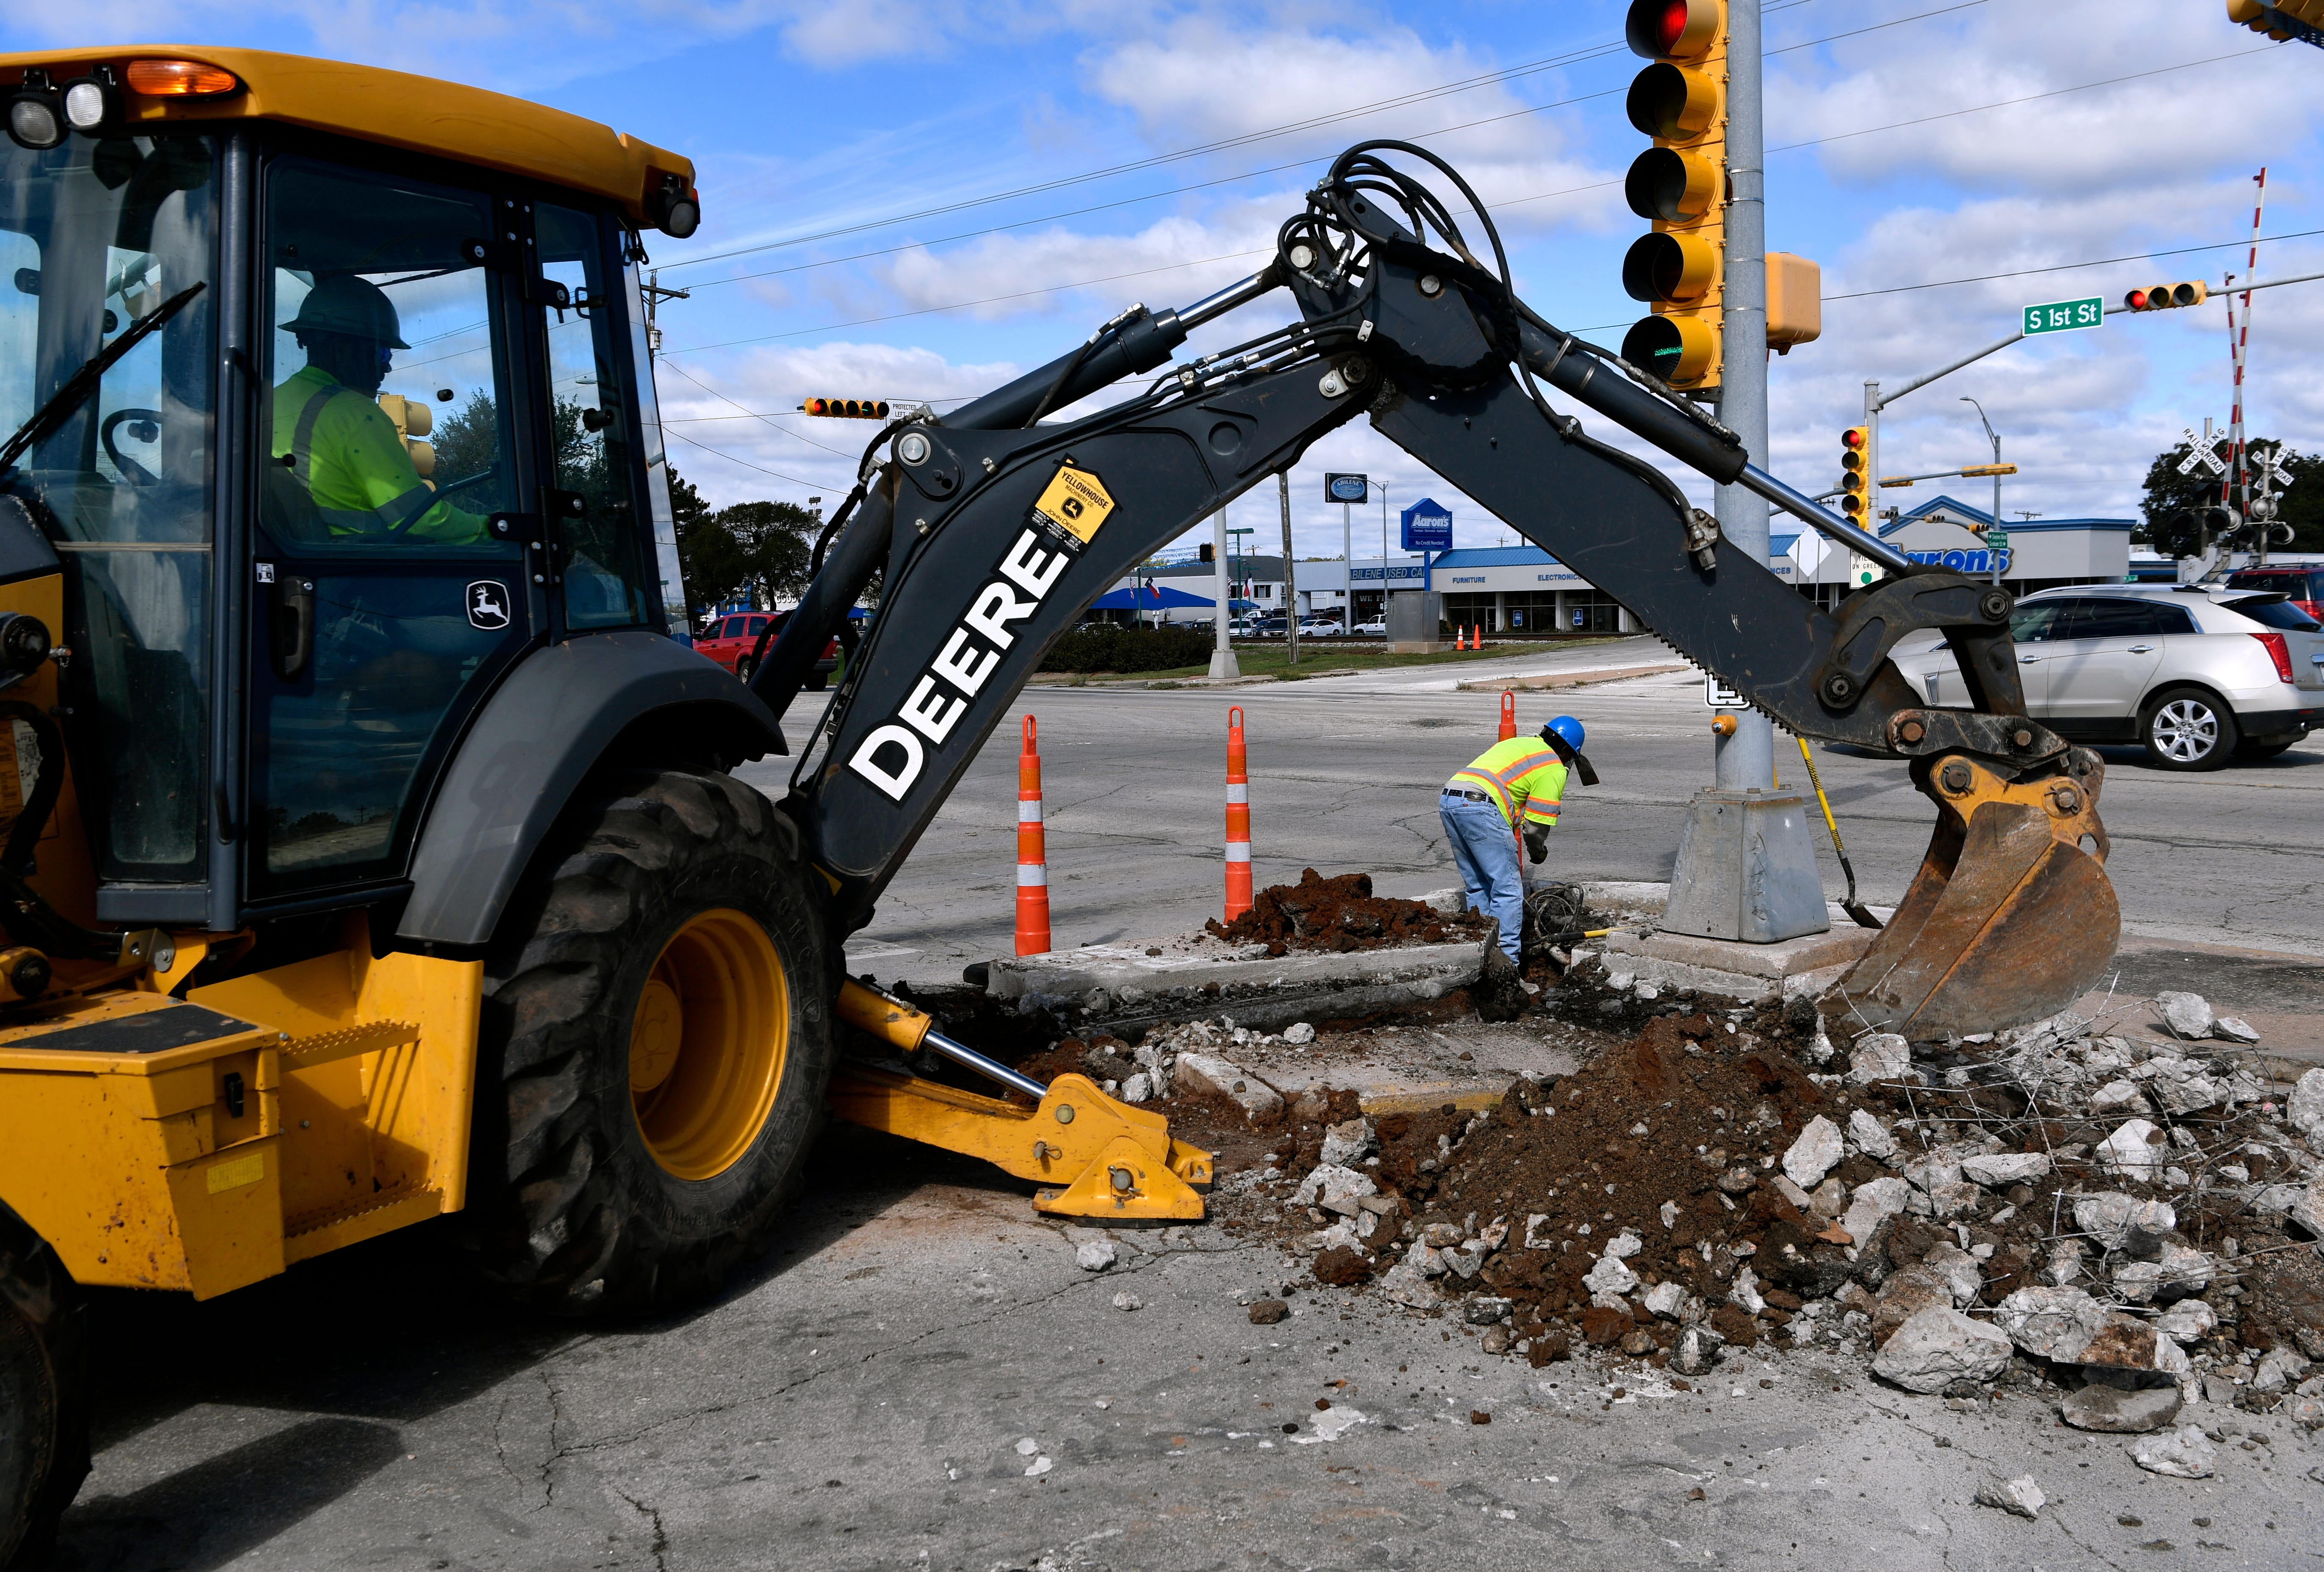 Workers dig beneath a traffic signal at South First Street and Sayles Boulevard Thursday. The men are installing traffic sensors there.